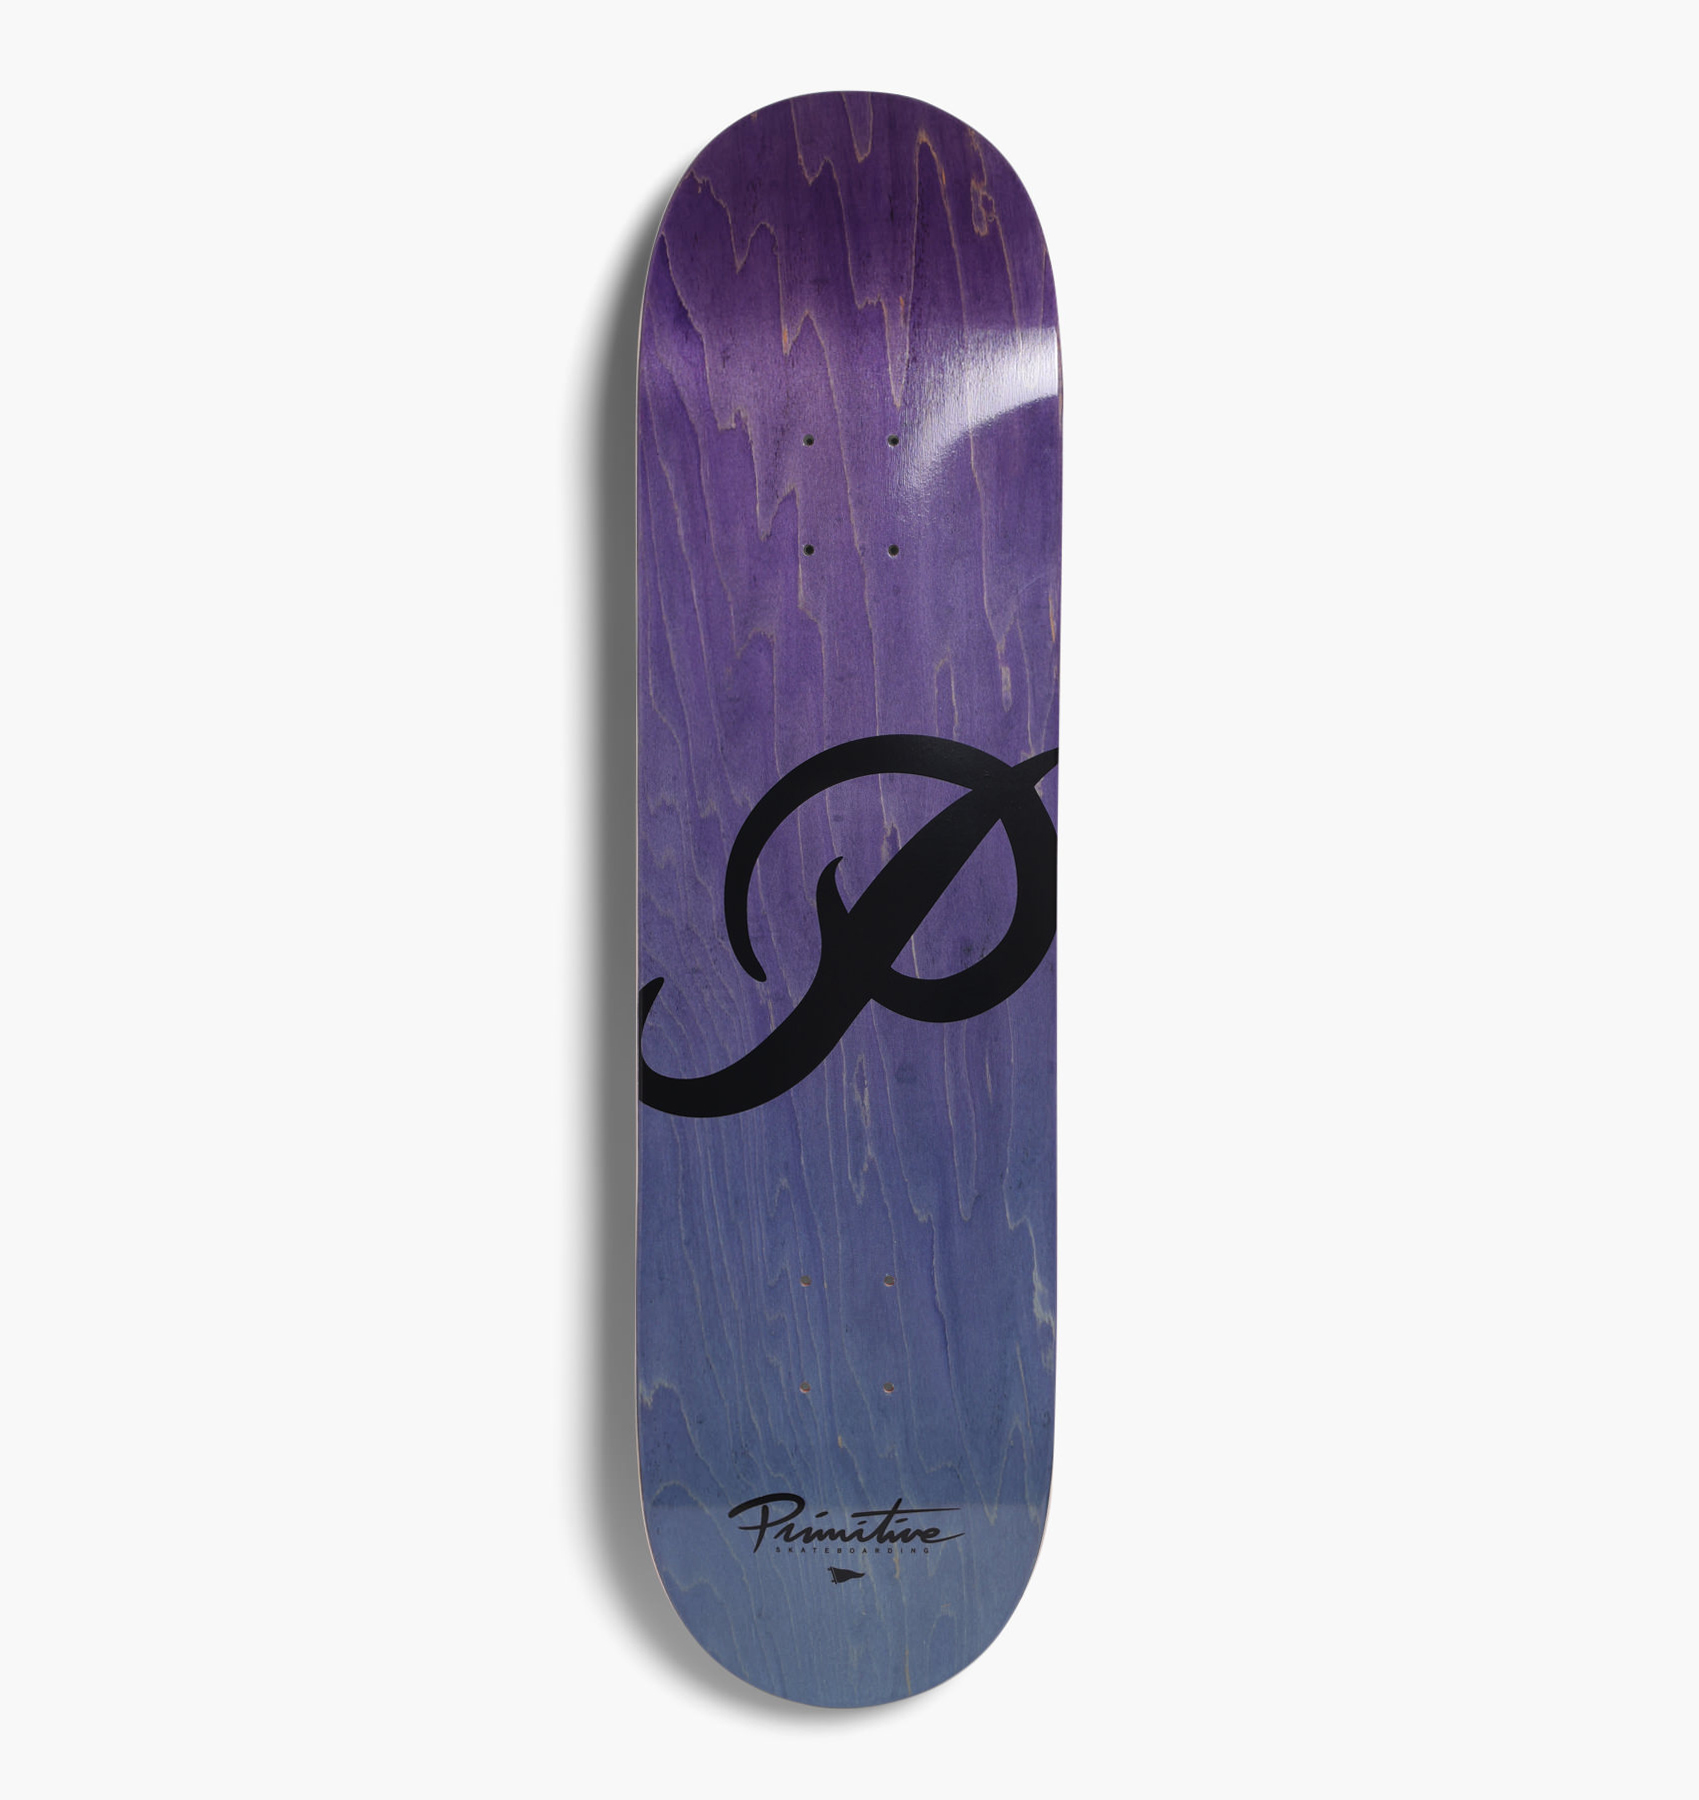 Primitive doska 8.25 CLASSIC P GRADIENT DECK- PURPLE